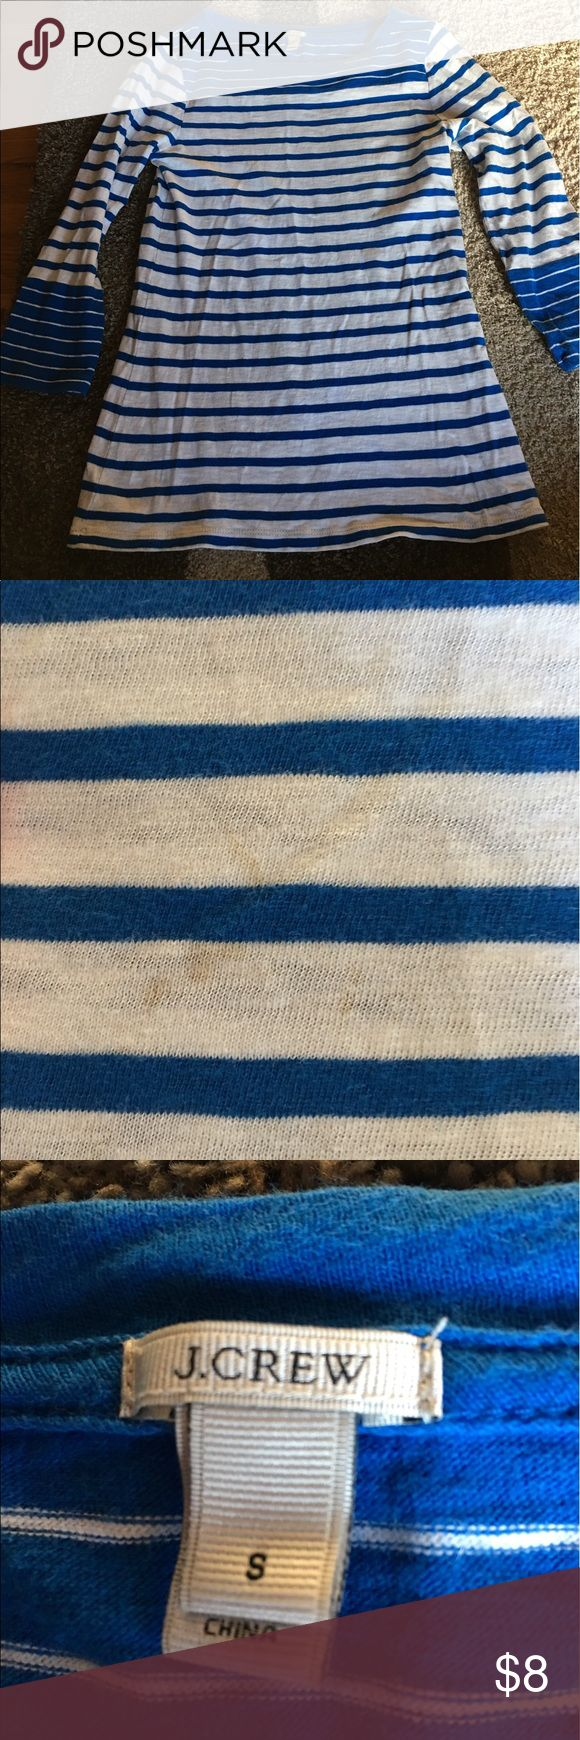 Jcrew size small women's blue and white shirt Jcrew size women's small blue and white striped three quarter length top. Small unnoticeable stain on front (see picture). Washed never dried J. Crew Tops Tees - Long Sleeve